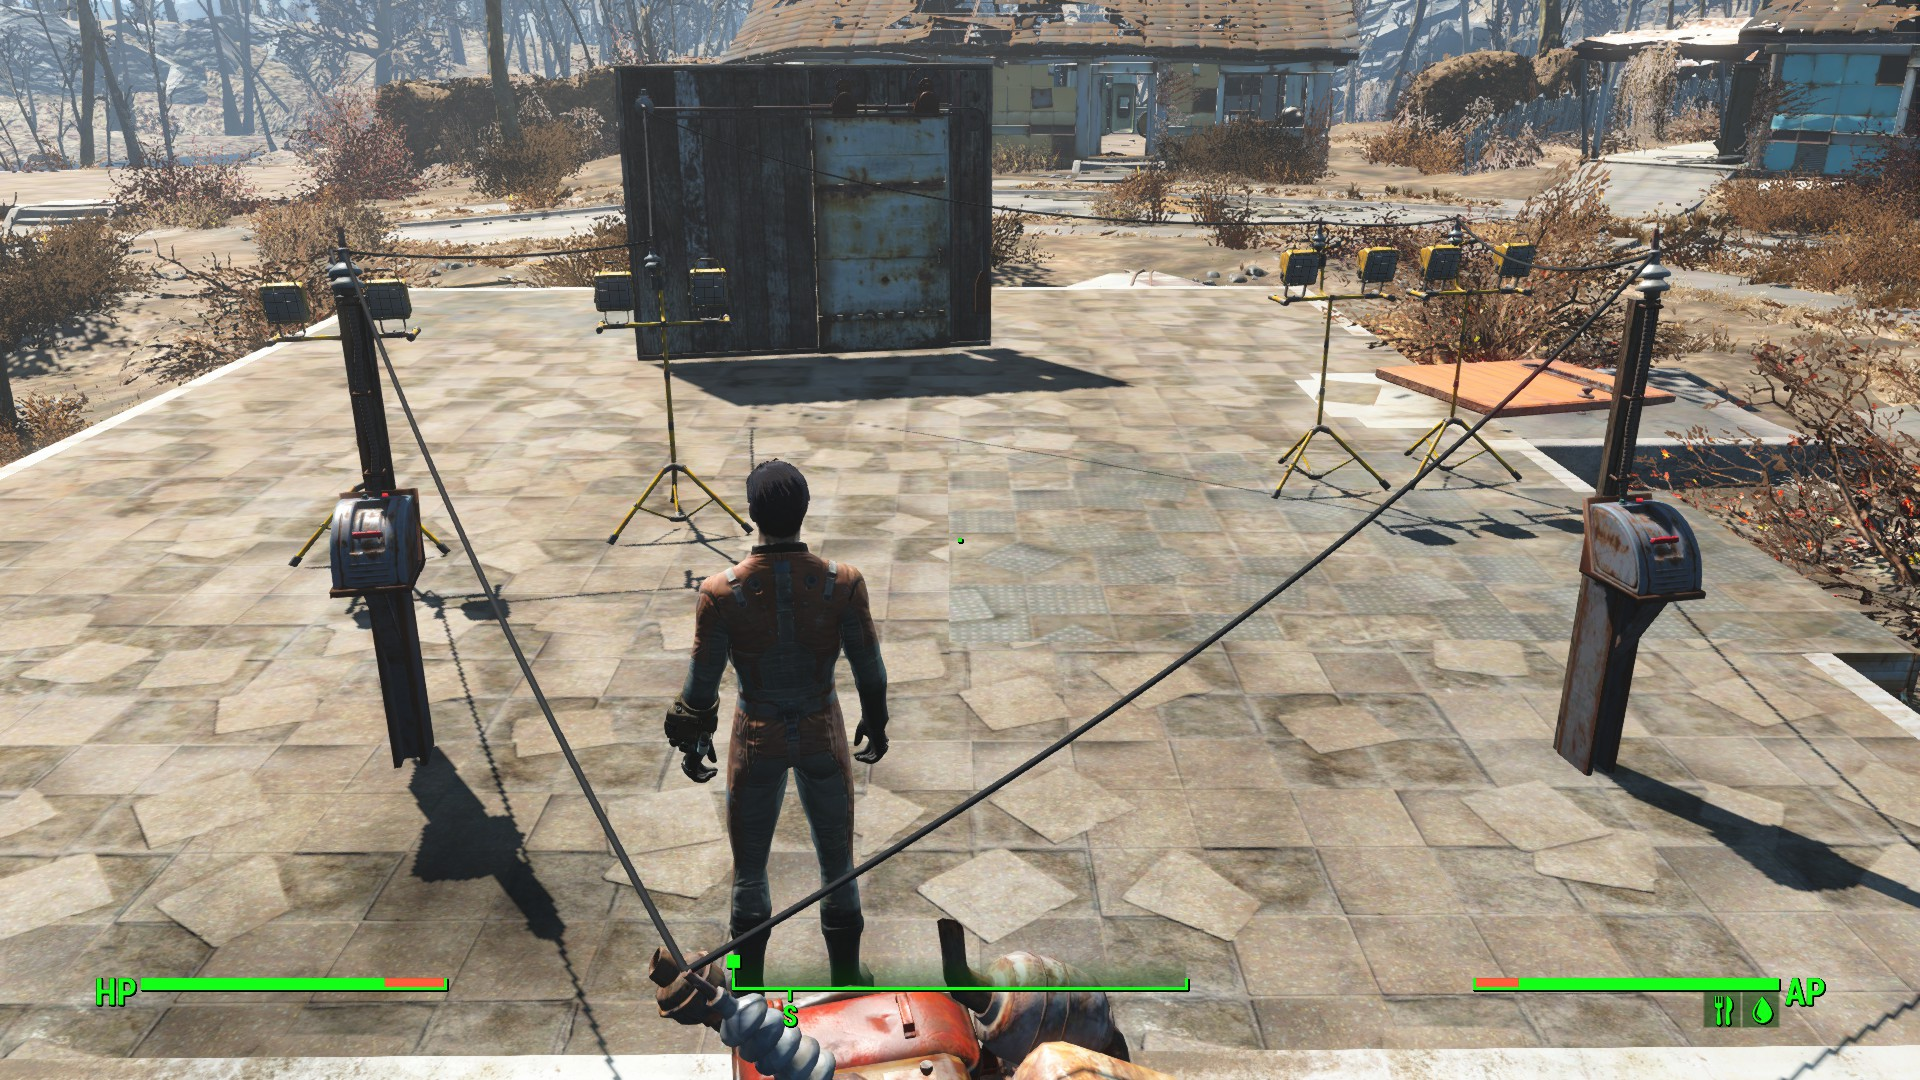 1 Powered Door And 2 Switches Fallout 4 Discusses Gerais Way Generator Switch Here Is A To Do It The Has 3 Power When One On Lights Use Doors Open Both Are